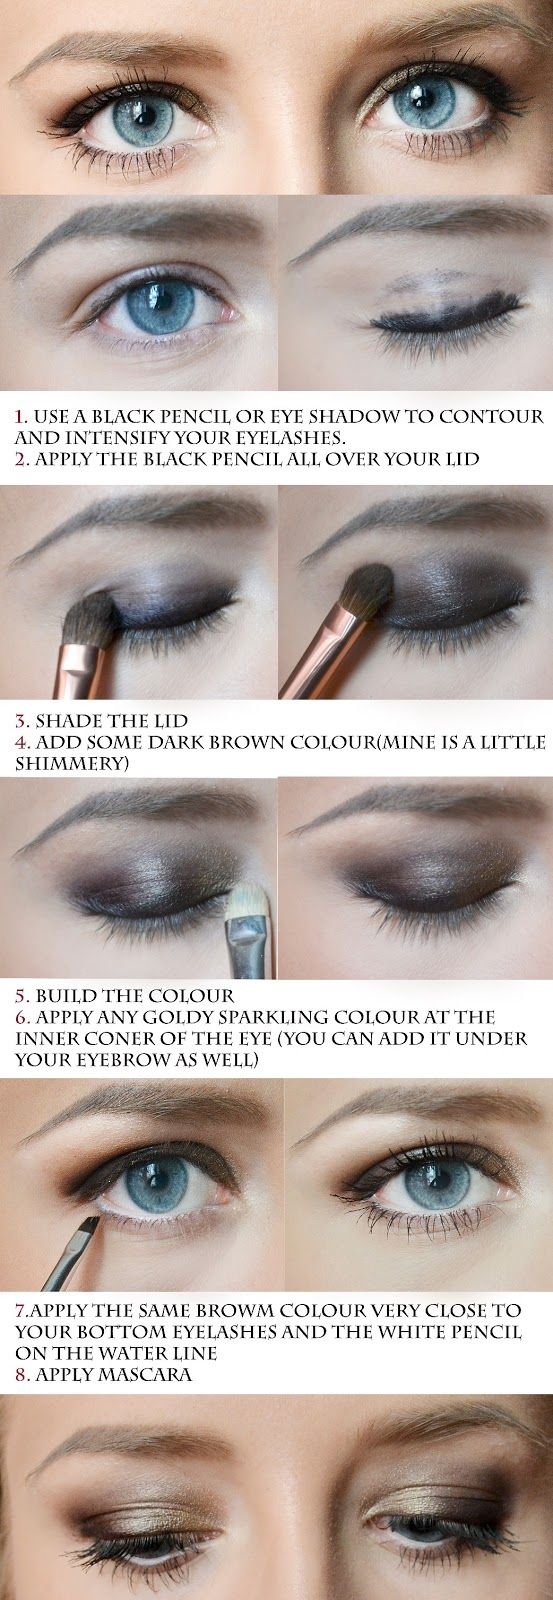 best makeup images on Pinterest  Beauty tips Hair makeup and